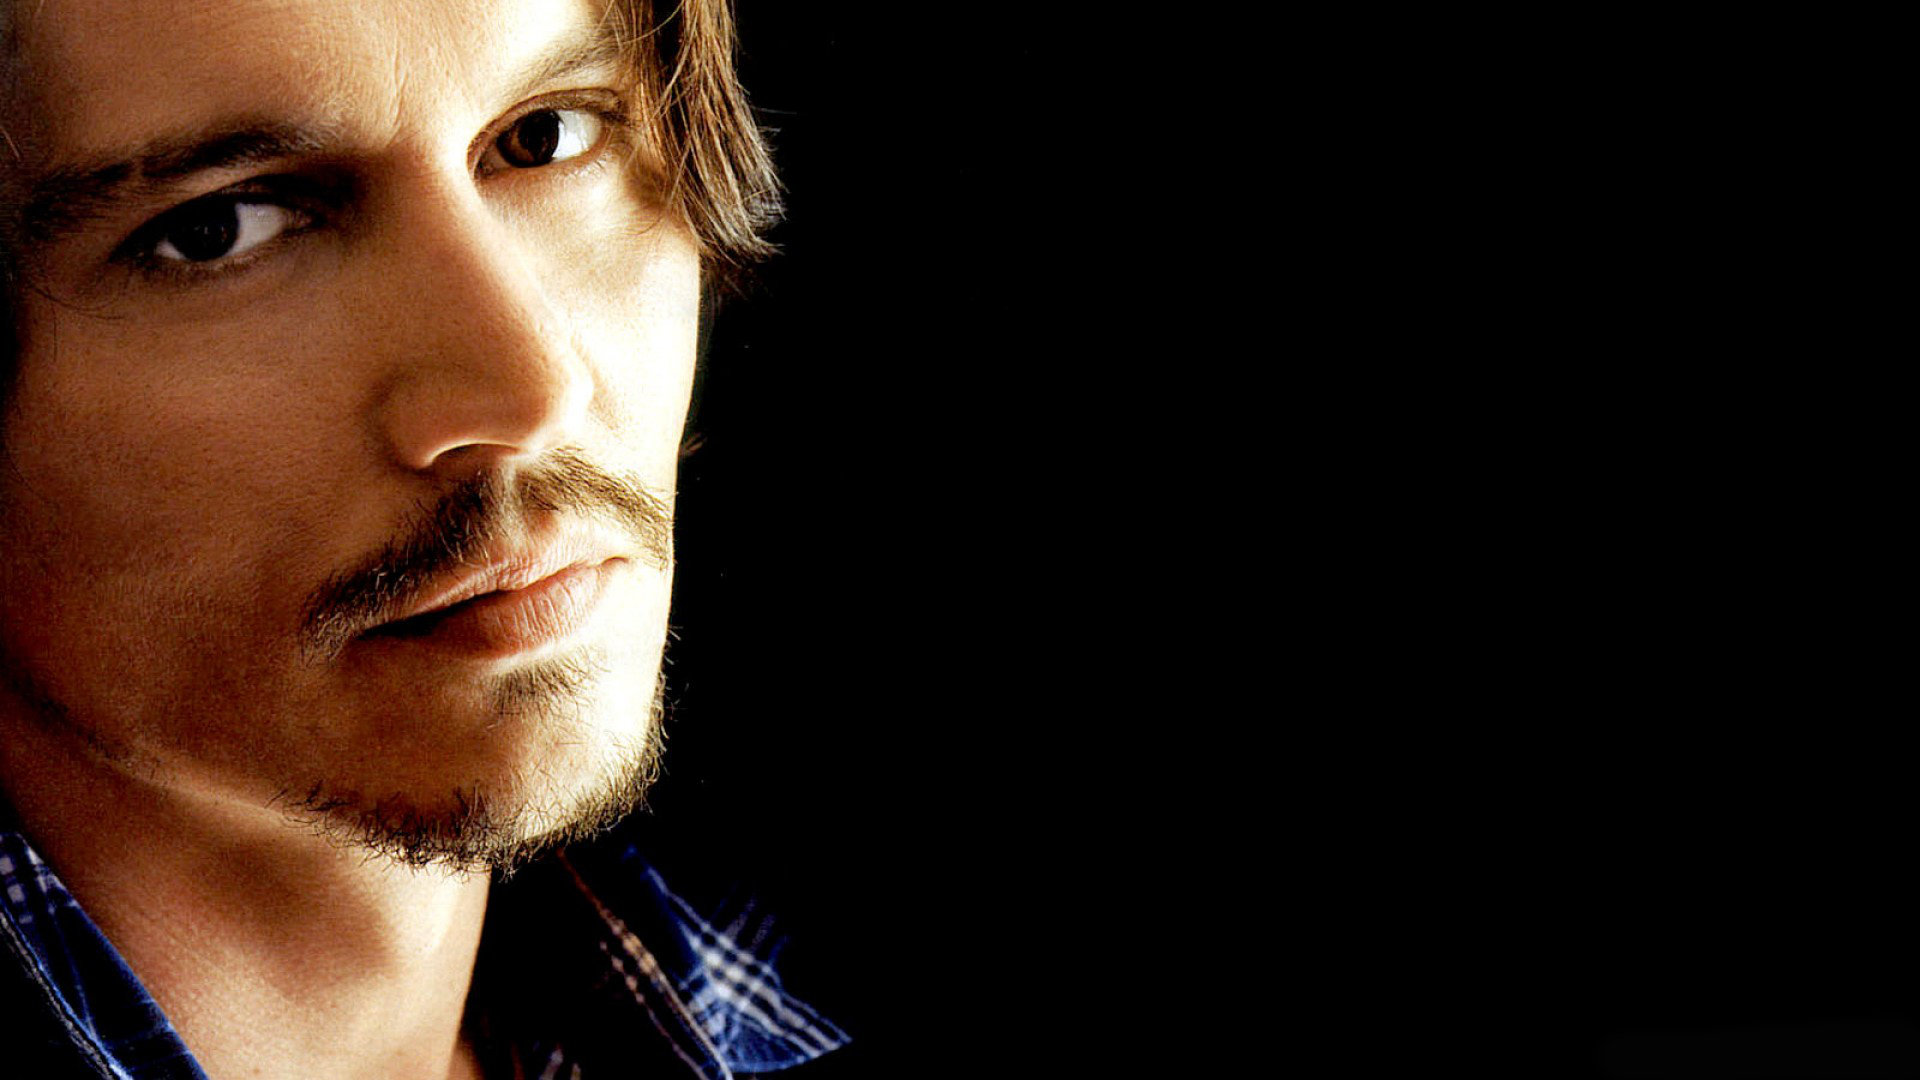 Free download Johnny Depp background ID:26683 full hd for PC